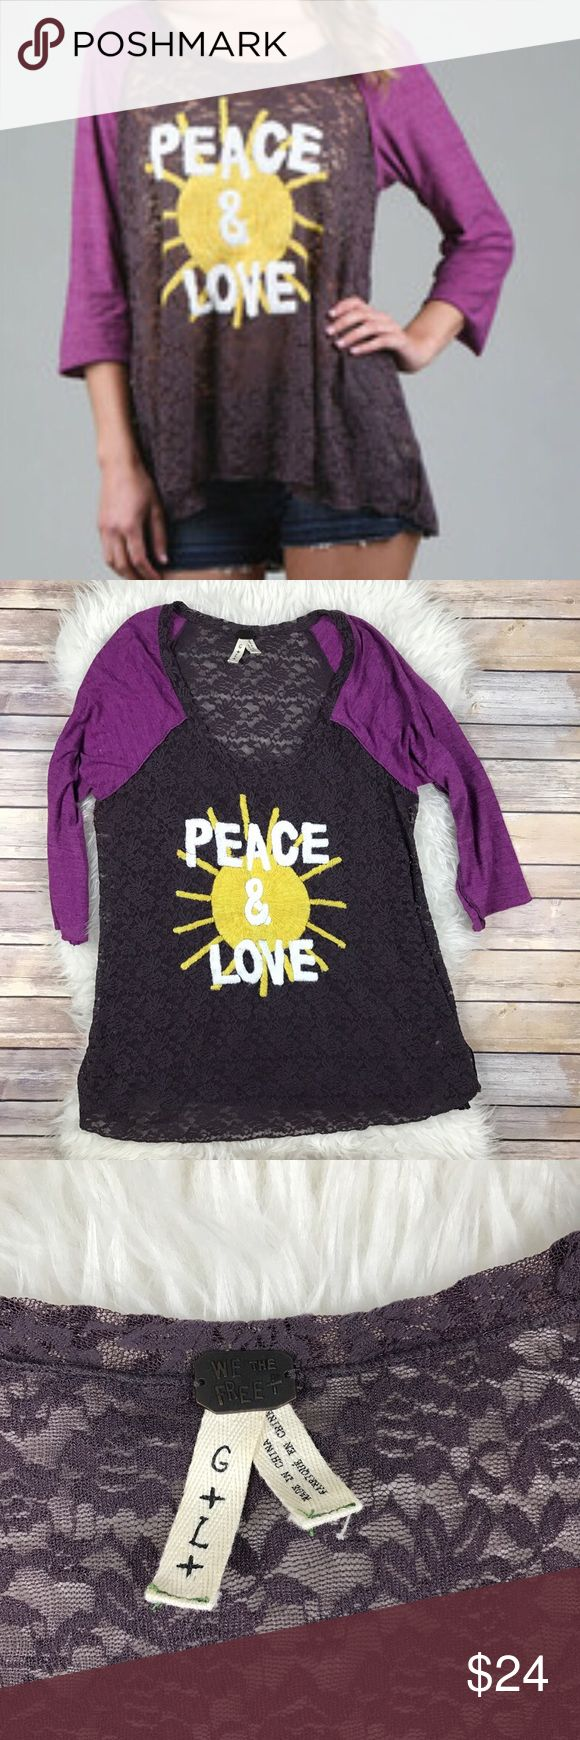 """We The Free Peace & Love Raglan Henley Tee Good condition Free People We The Free Peace & Love Lace Raglan Tee. Size Large. Stretchy Lace, Tunic style fit. 3/4 sleeves. Loose elastic threads under one arm, I've clipped most since the pic was taken. Bust 42"""", length 29"""". No trades, offers welcome. Free People Tops Tunics"""